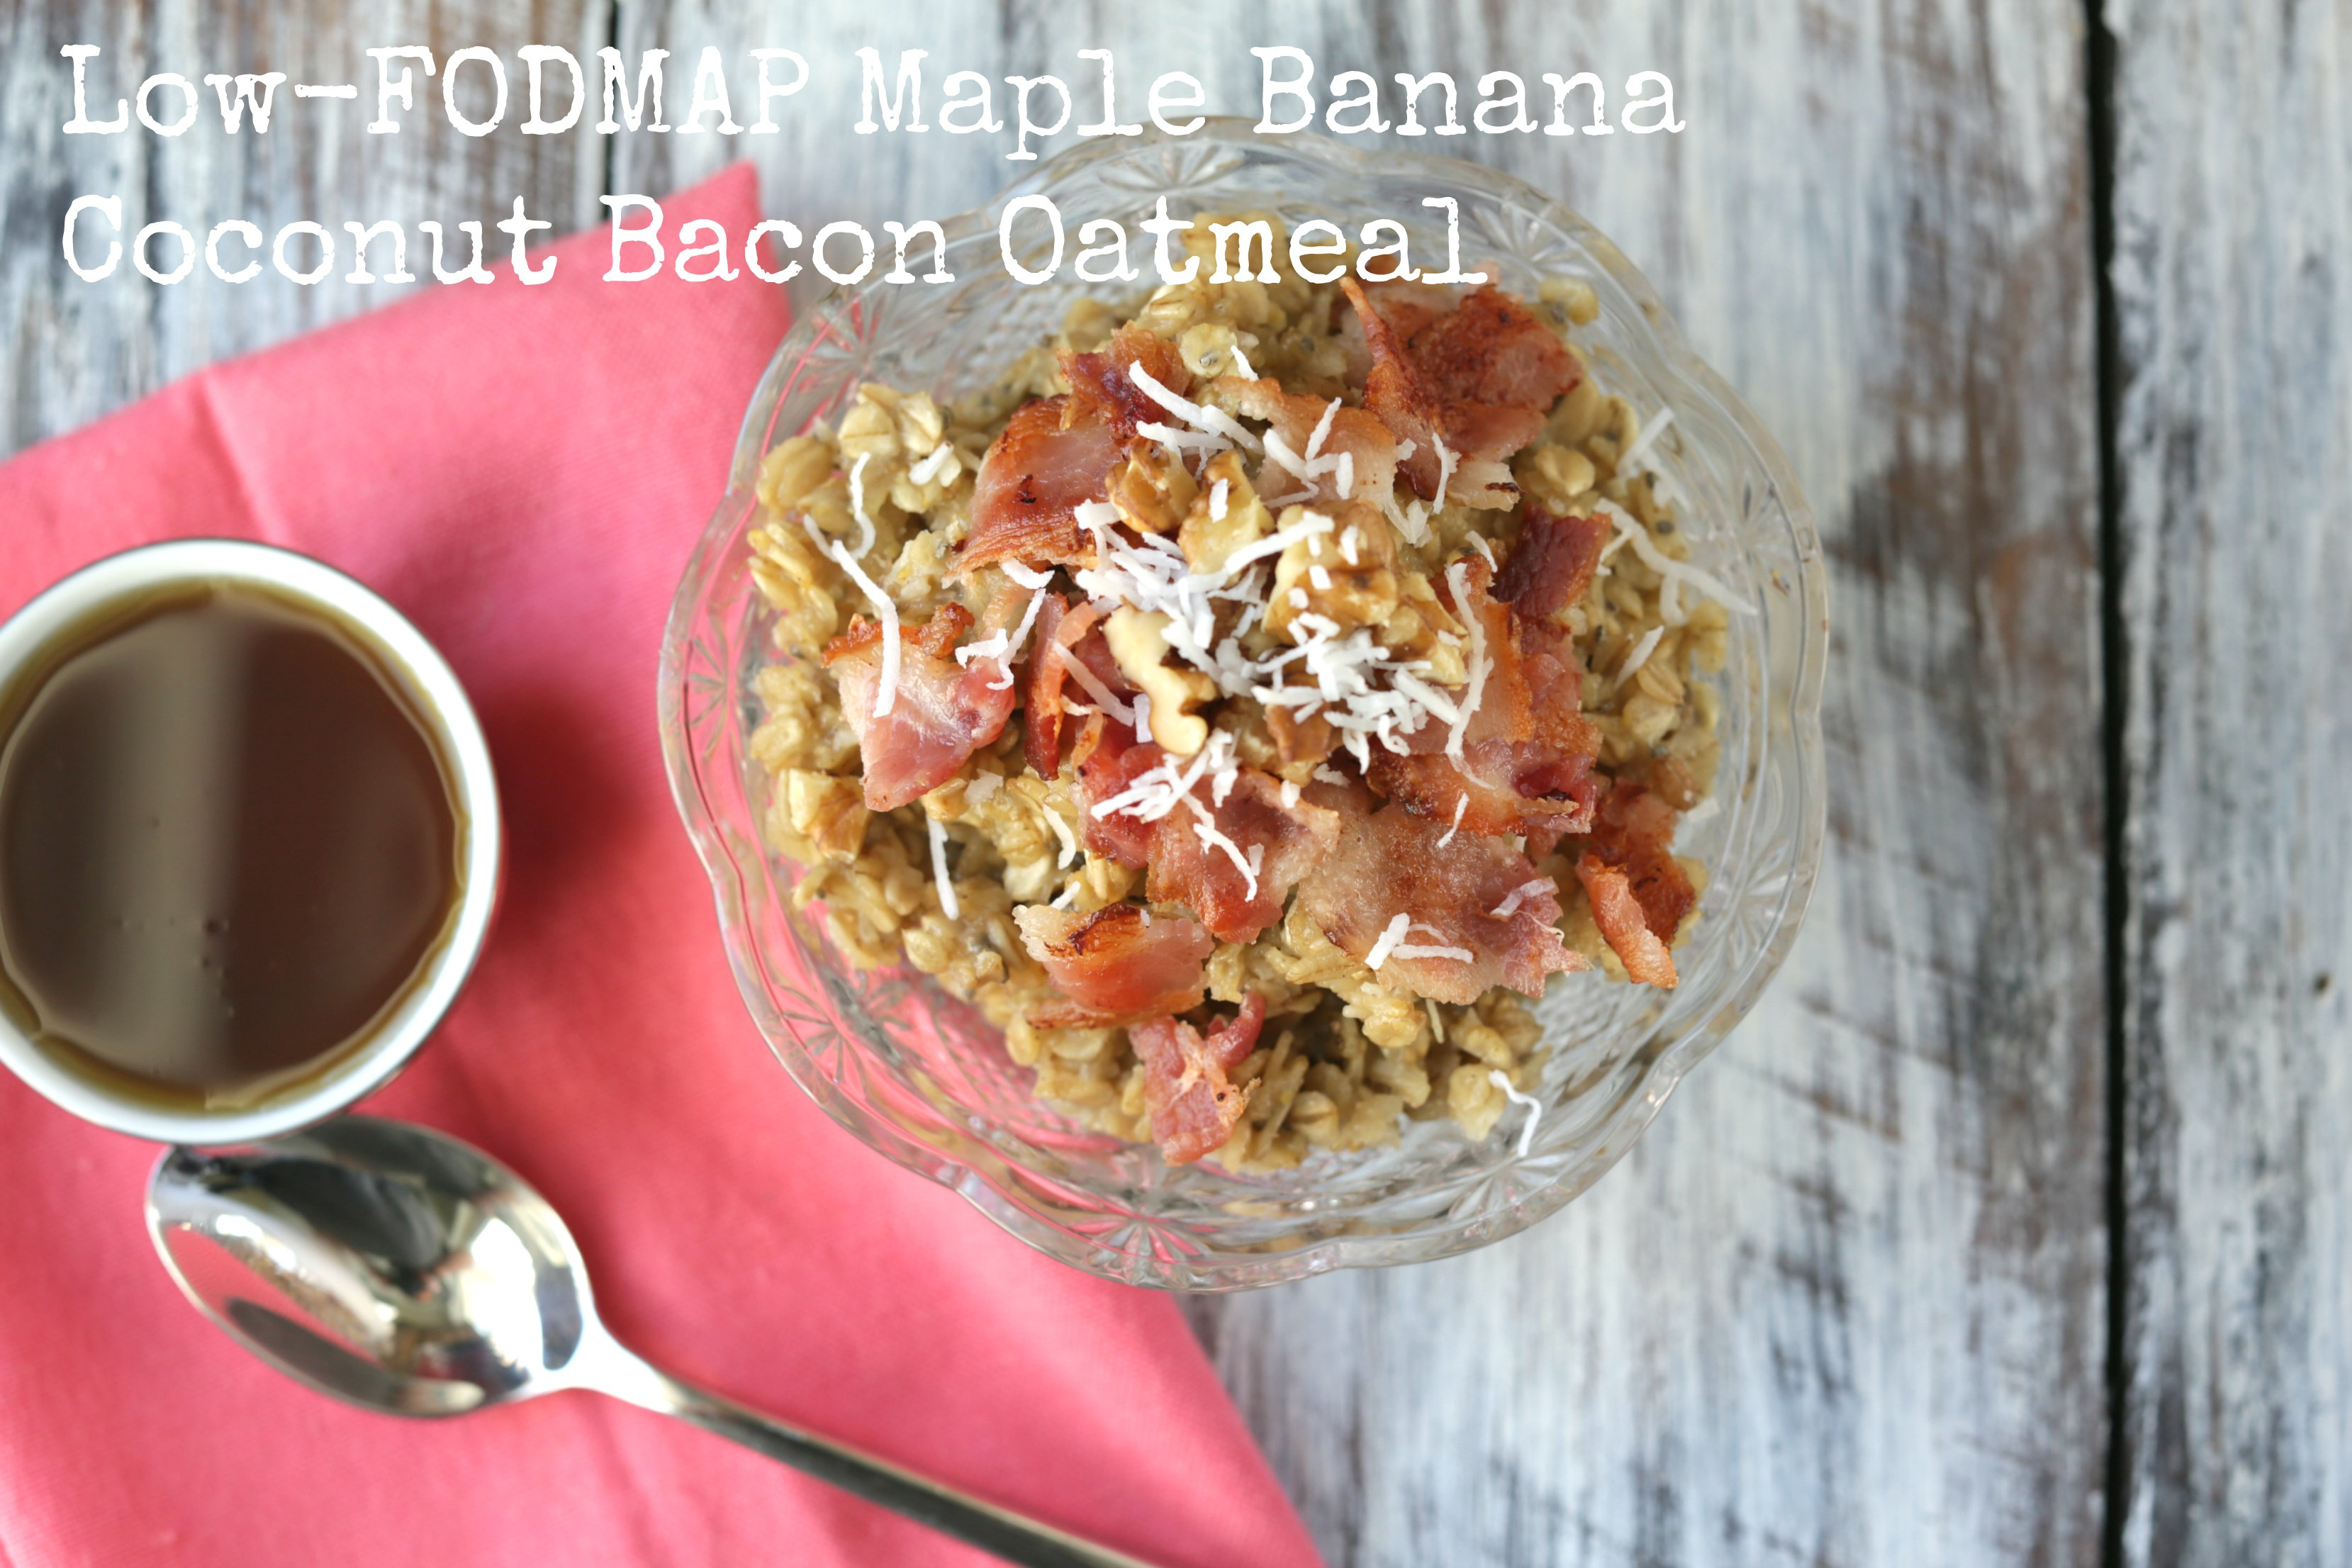 Low-FODMAP Maple Banana Coconut Bacon Oatmeal